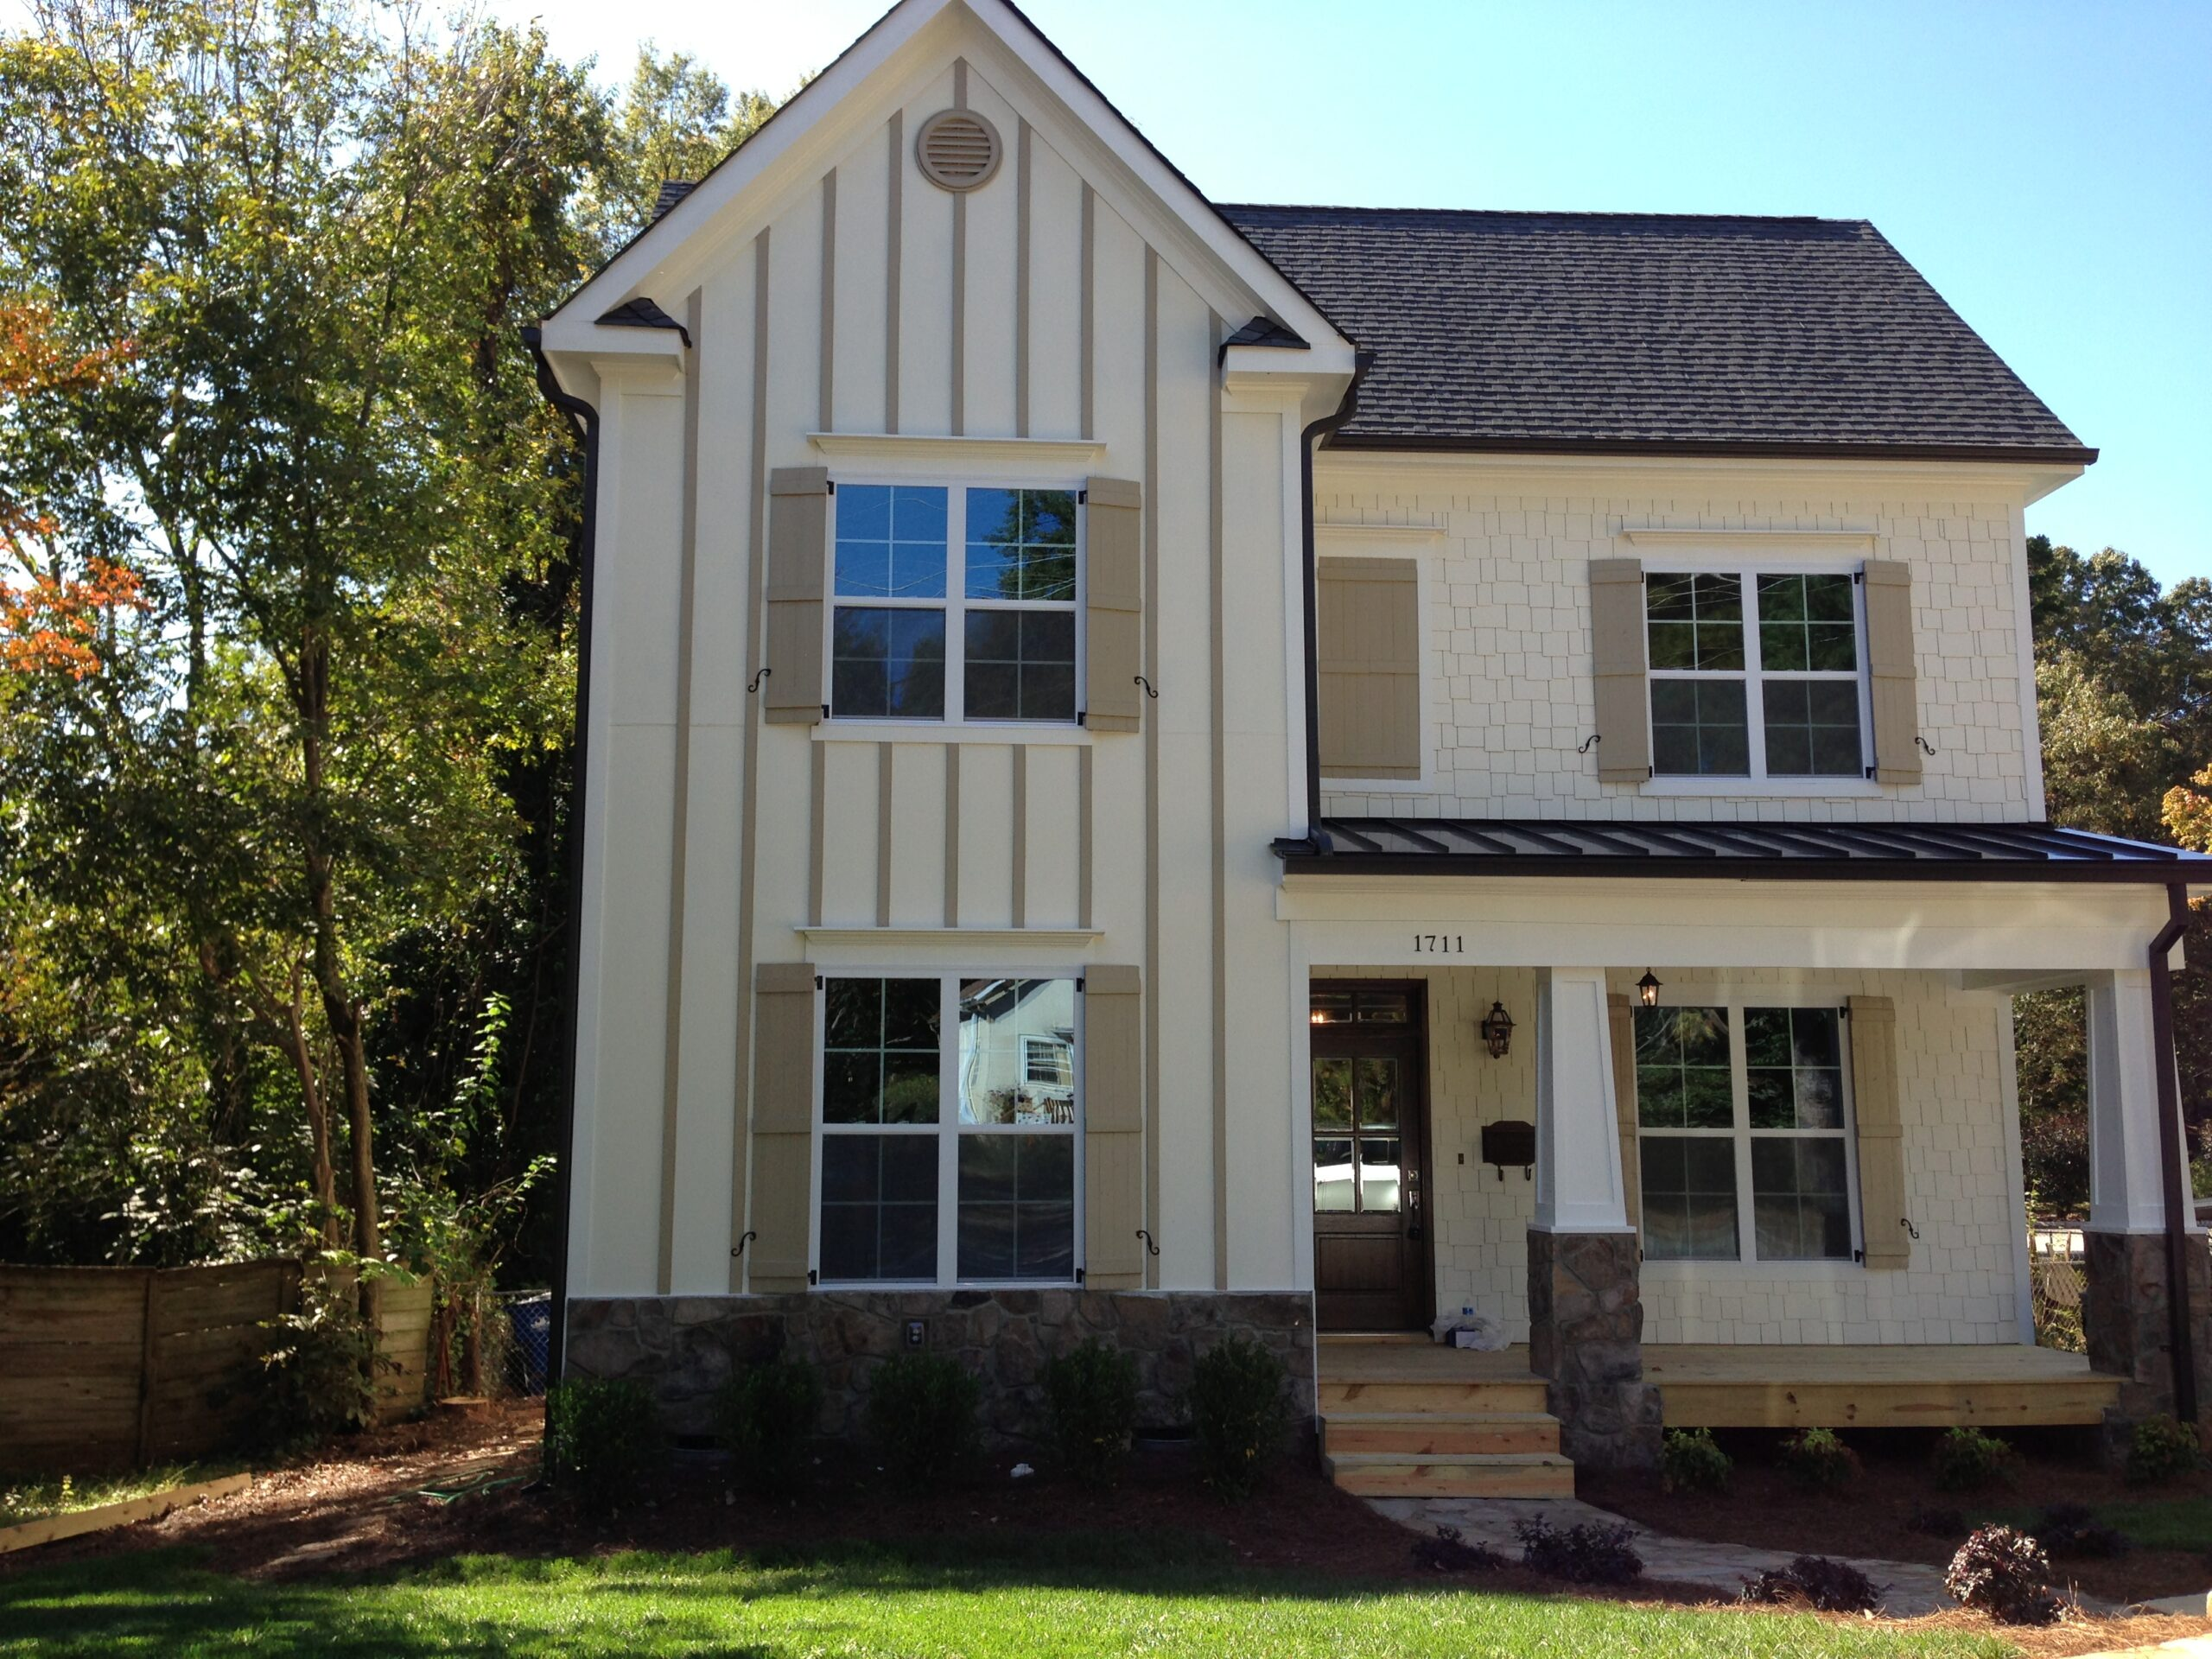 1711 Center Road in Raleigh Custom Built Home by Urban Building Solutions